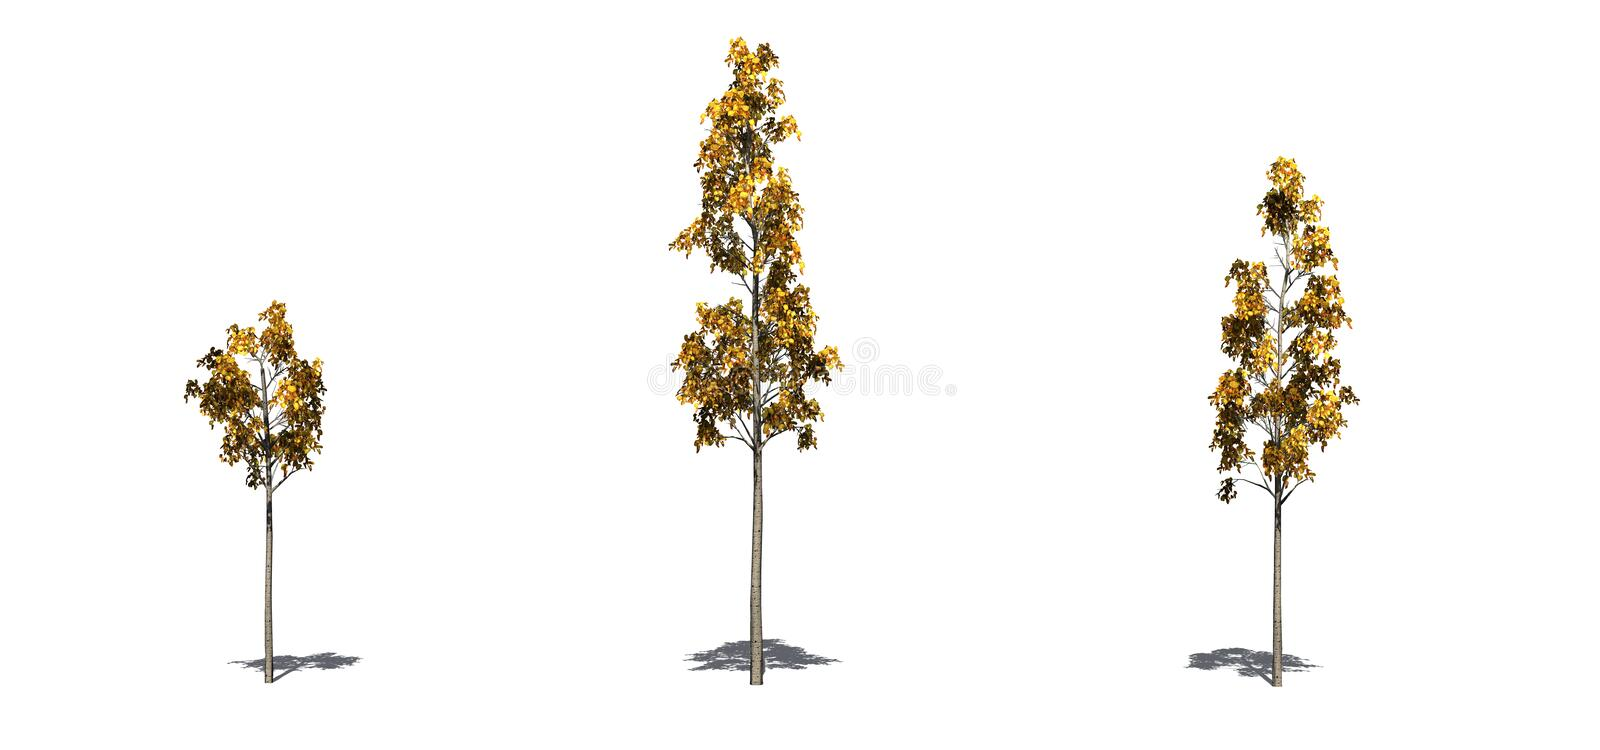 Set of European Aspen trees in the autumn with shadow on the floor on white background. Set of European Aspen trees in the autumn with shadow on the floor vector illustration